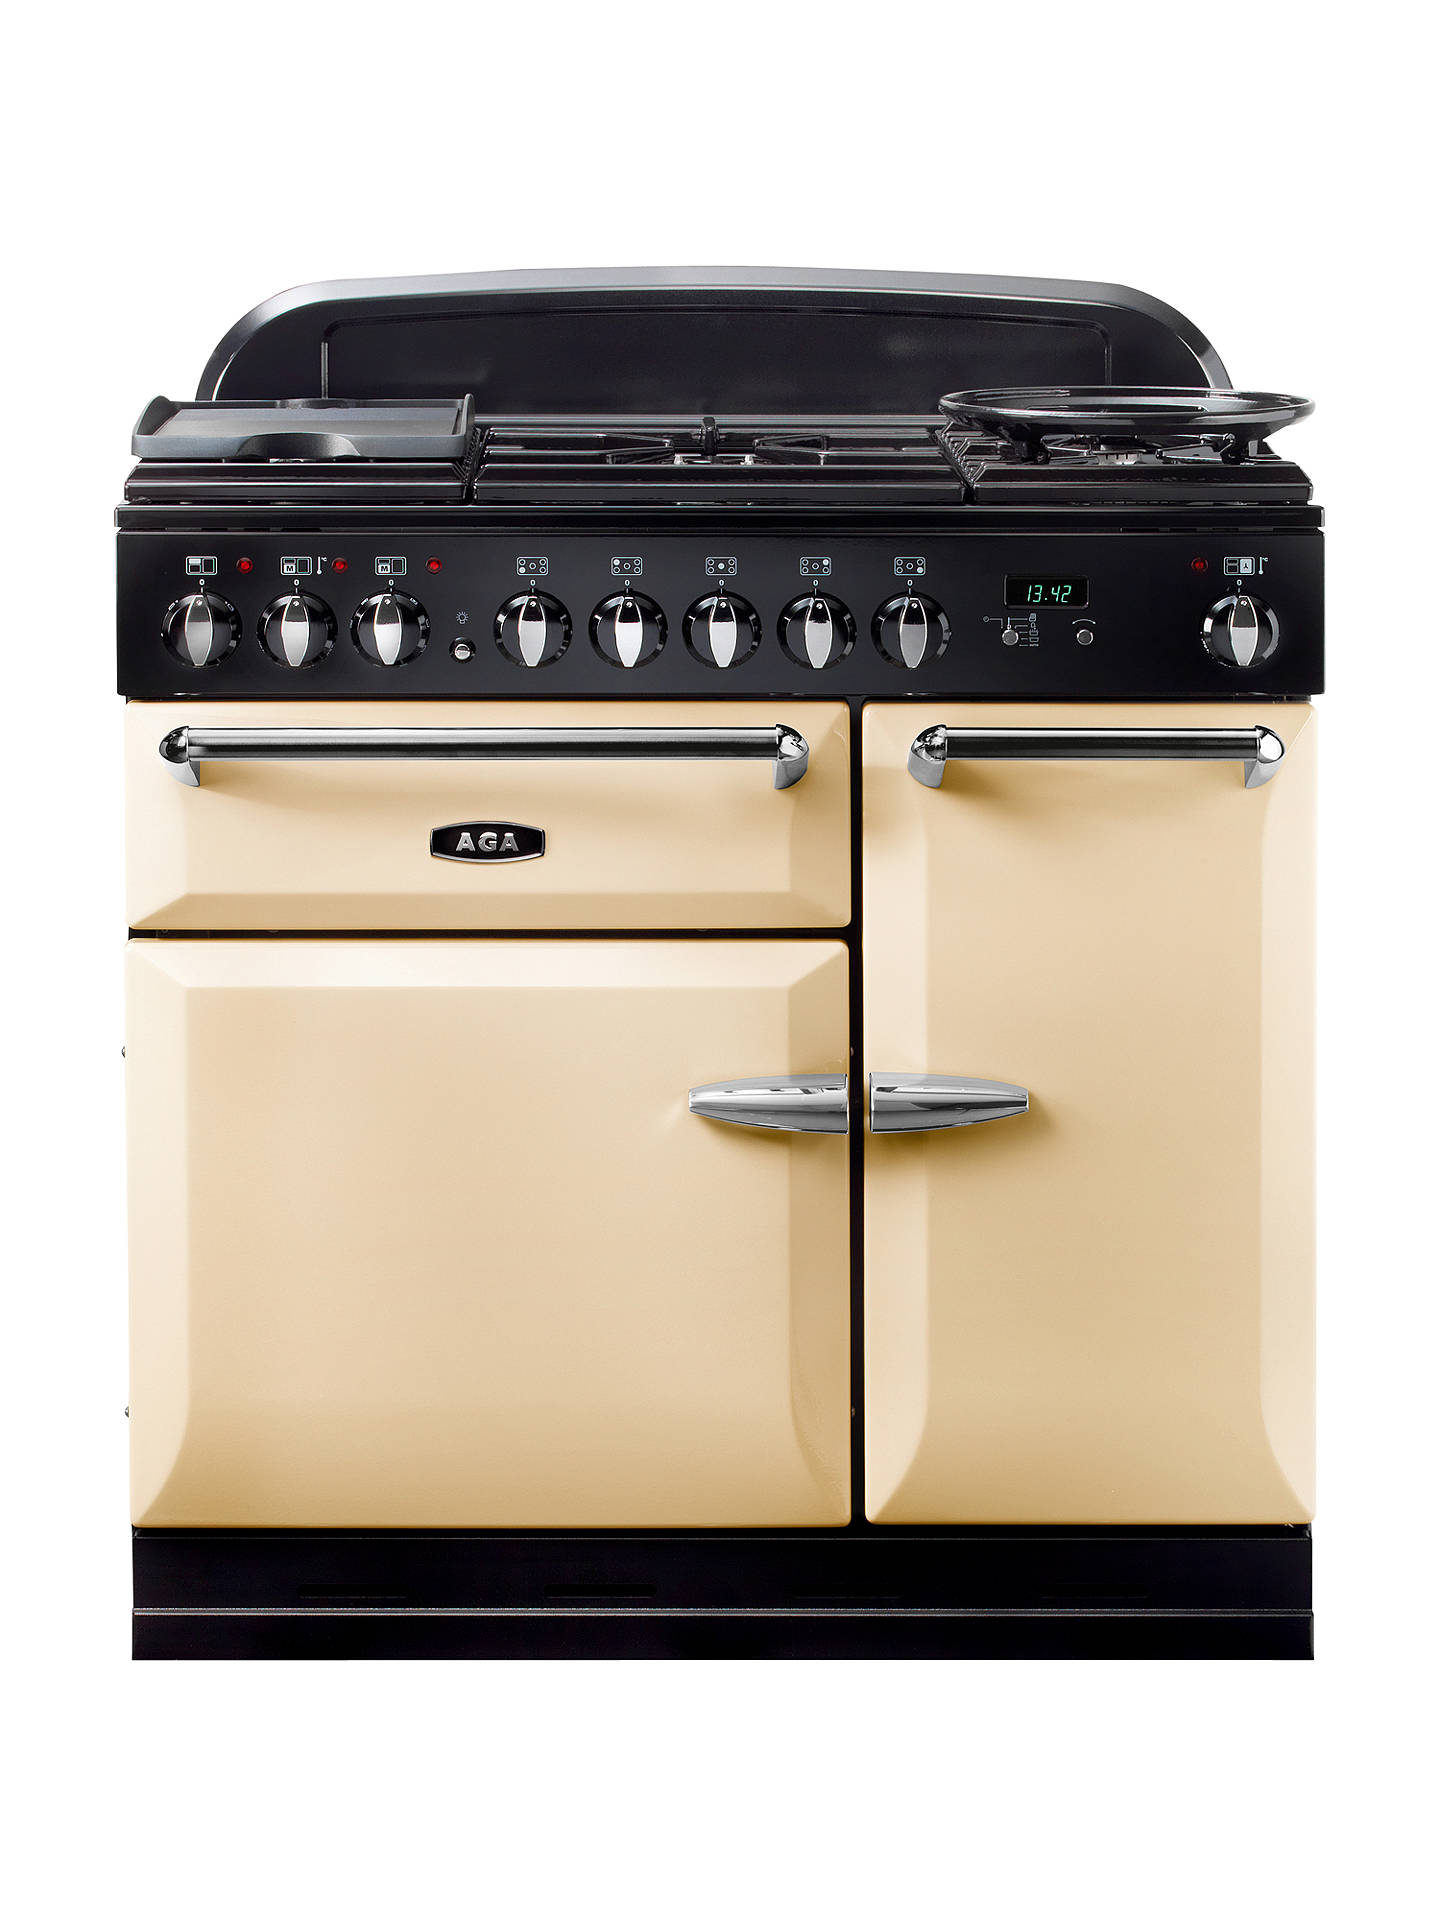 BuyAGA Masterchef XL 90 Dual Fuel Range Cooker, Cream Online at johnlewis.com